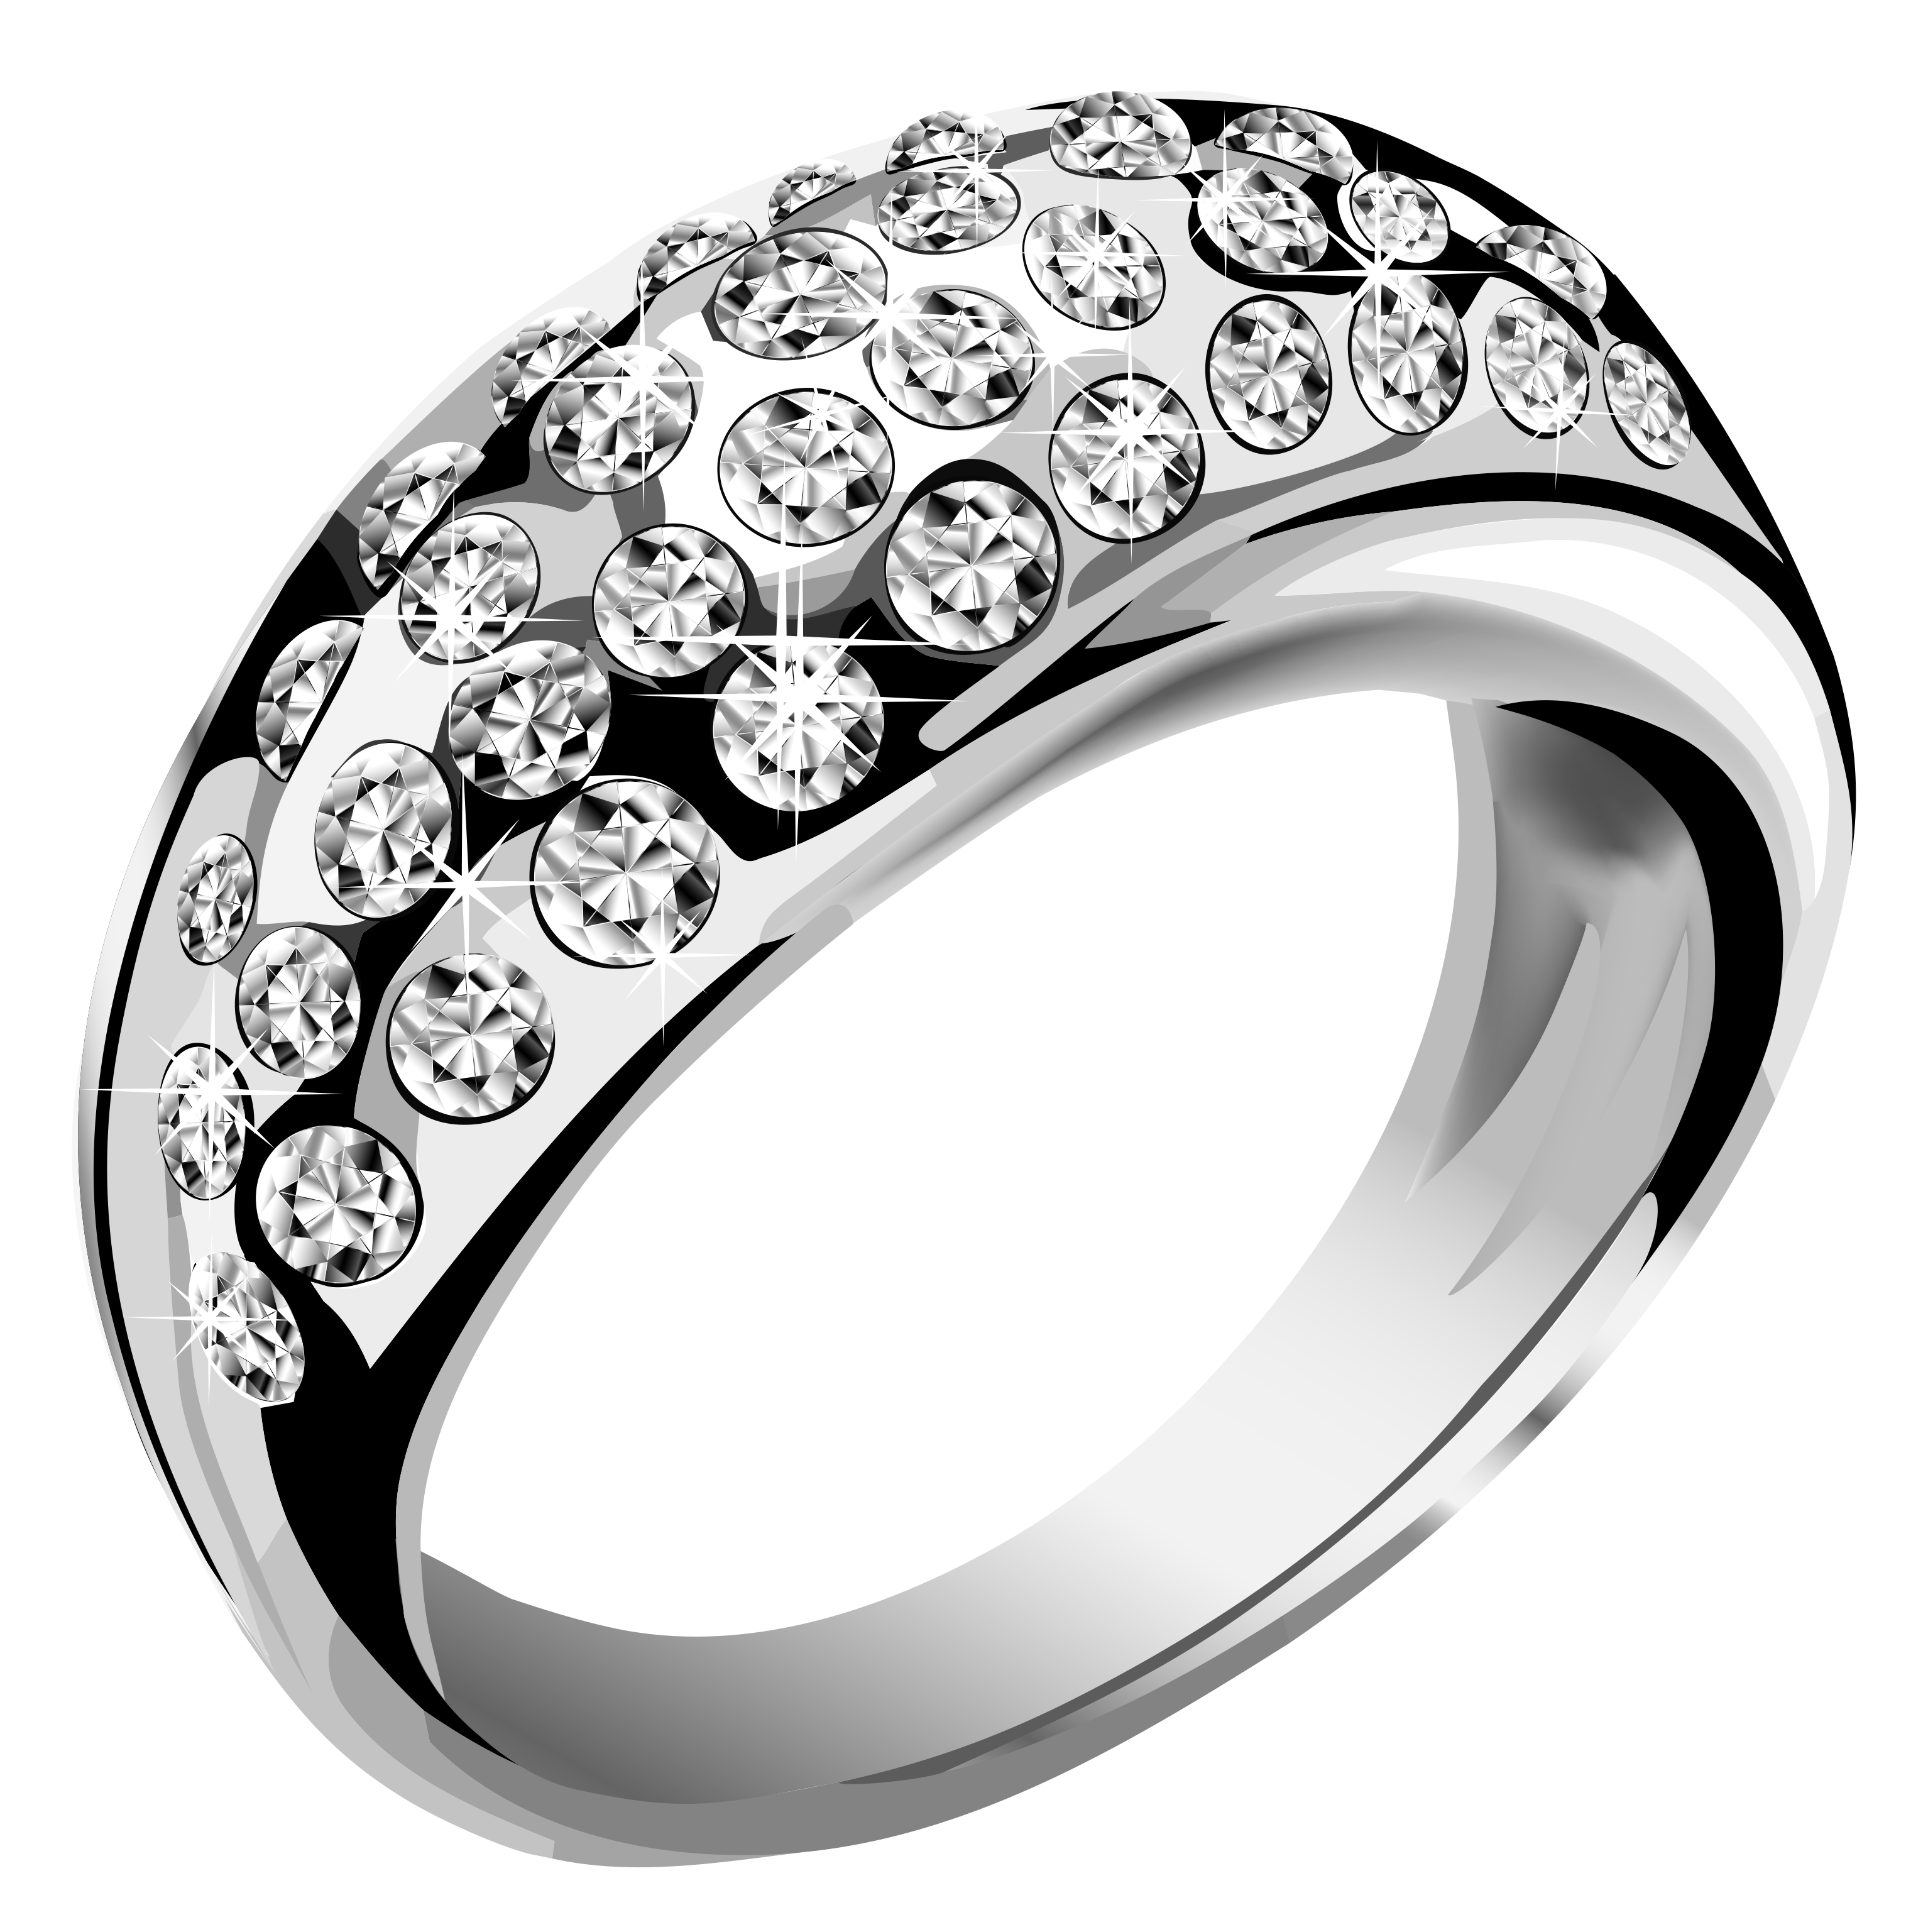 Silver ring png. With diamond image purepng